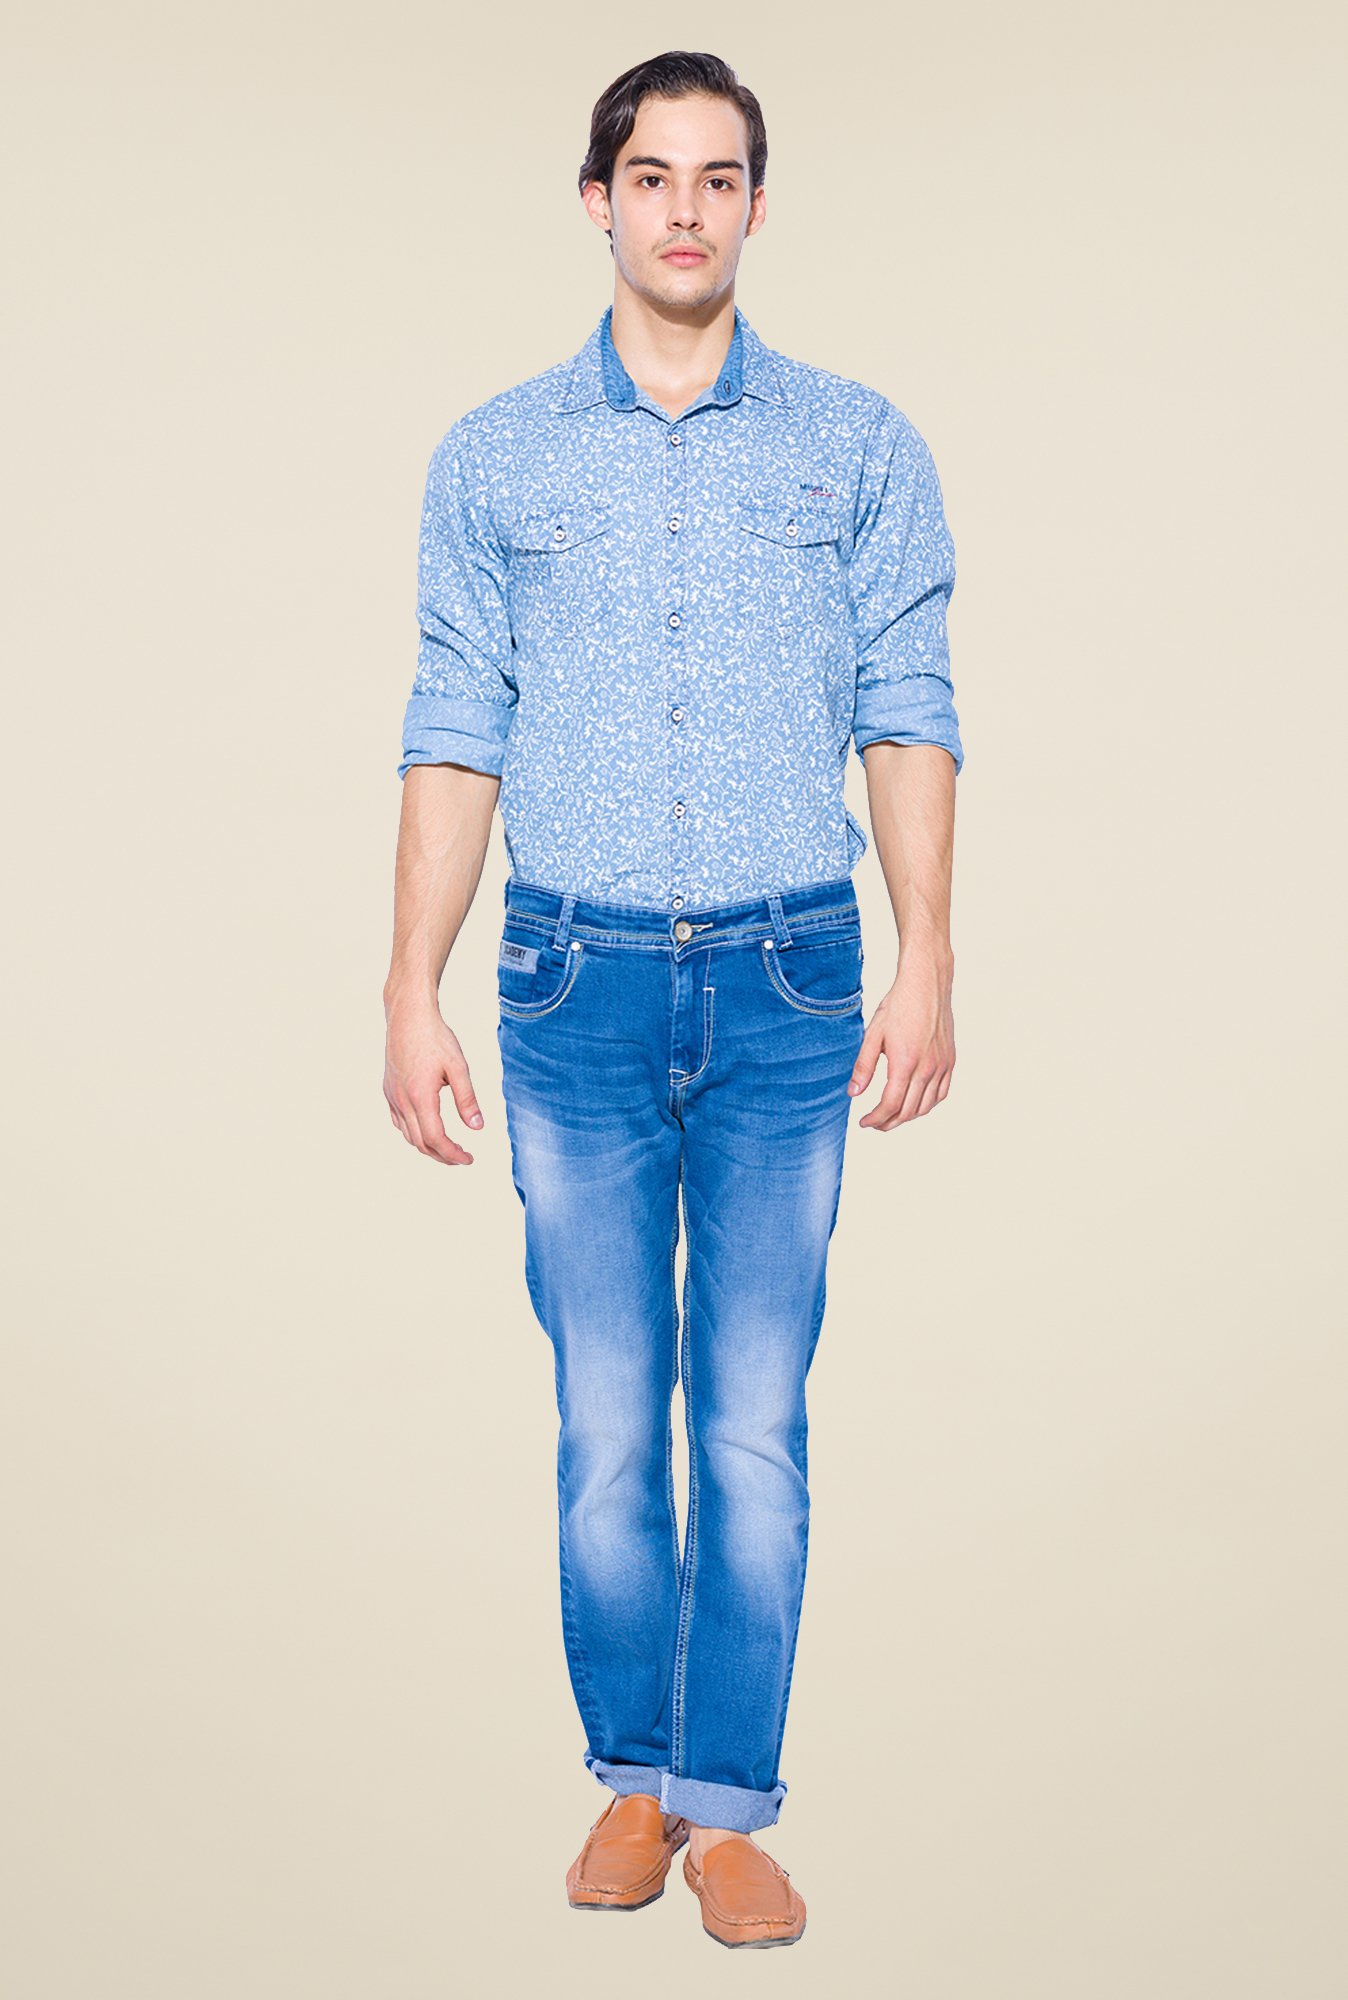 Mufti Blue Straight Fit Cotton Jeans